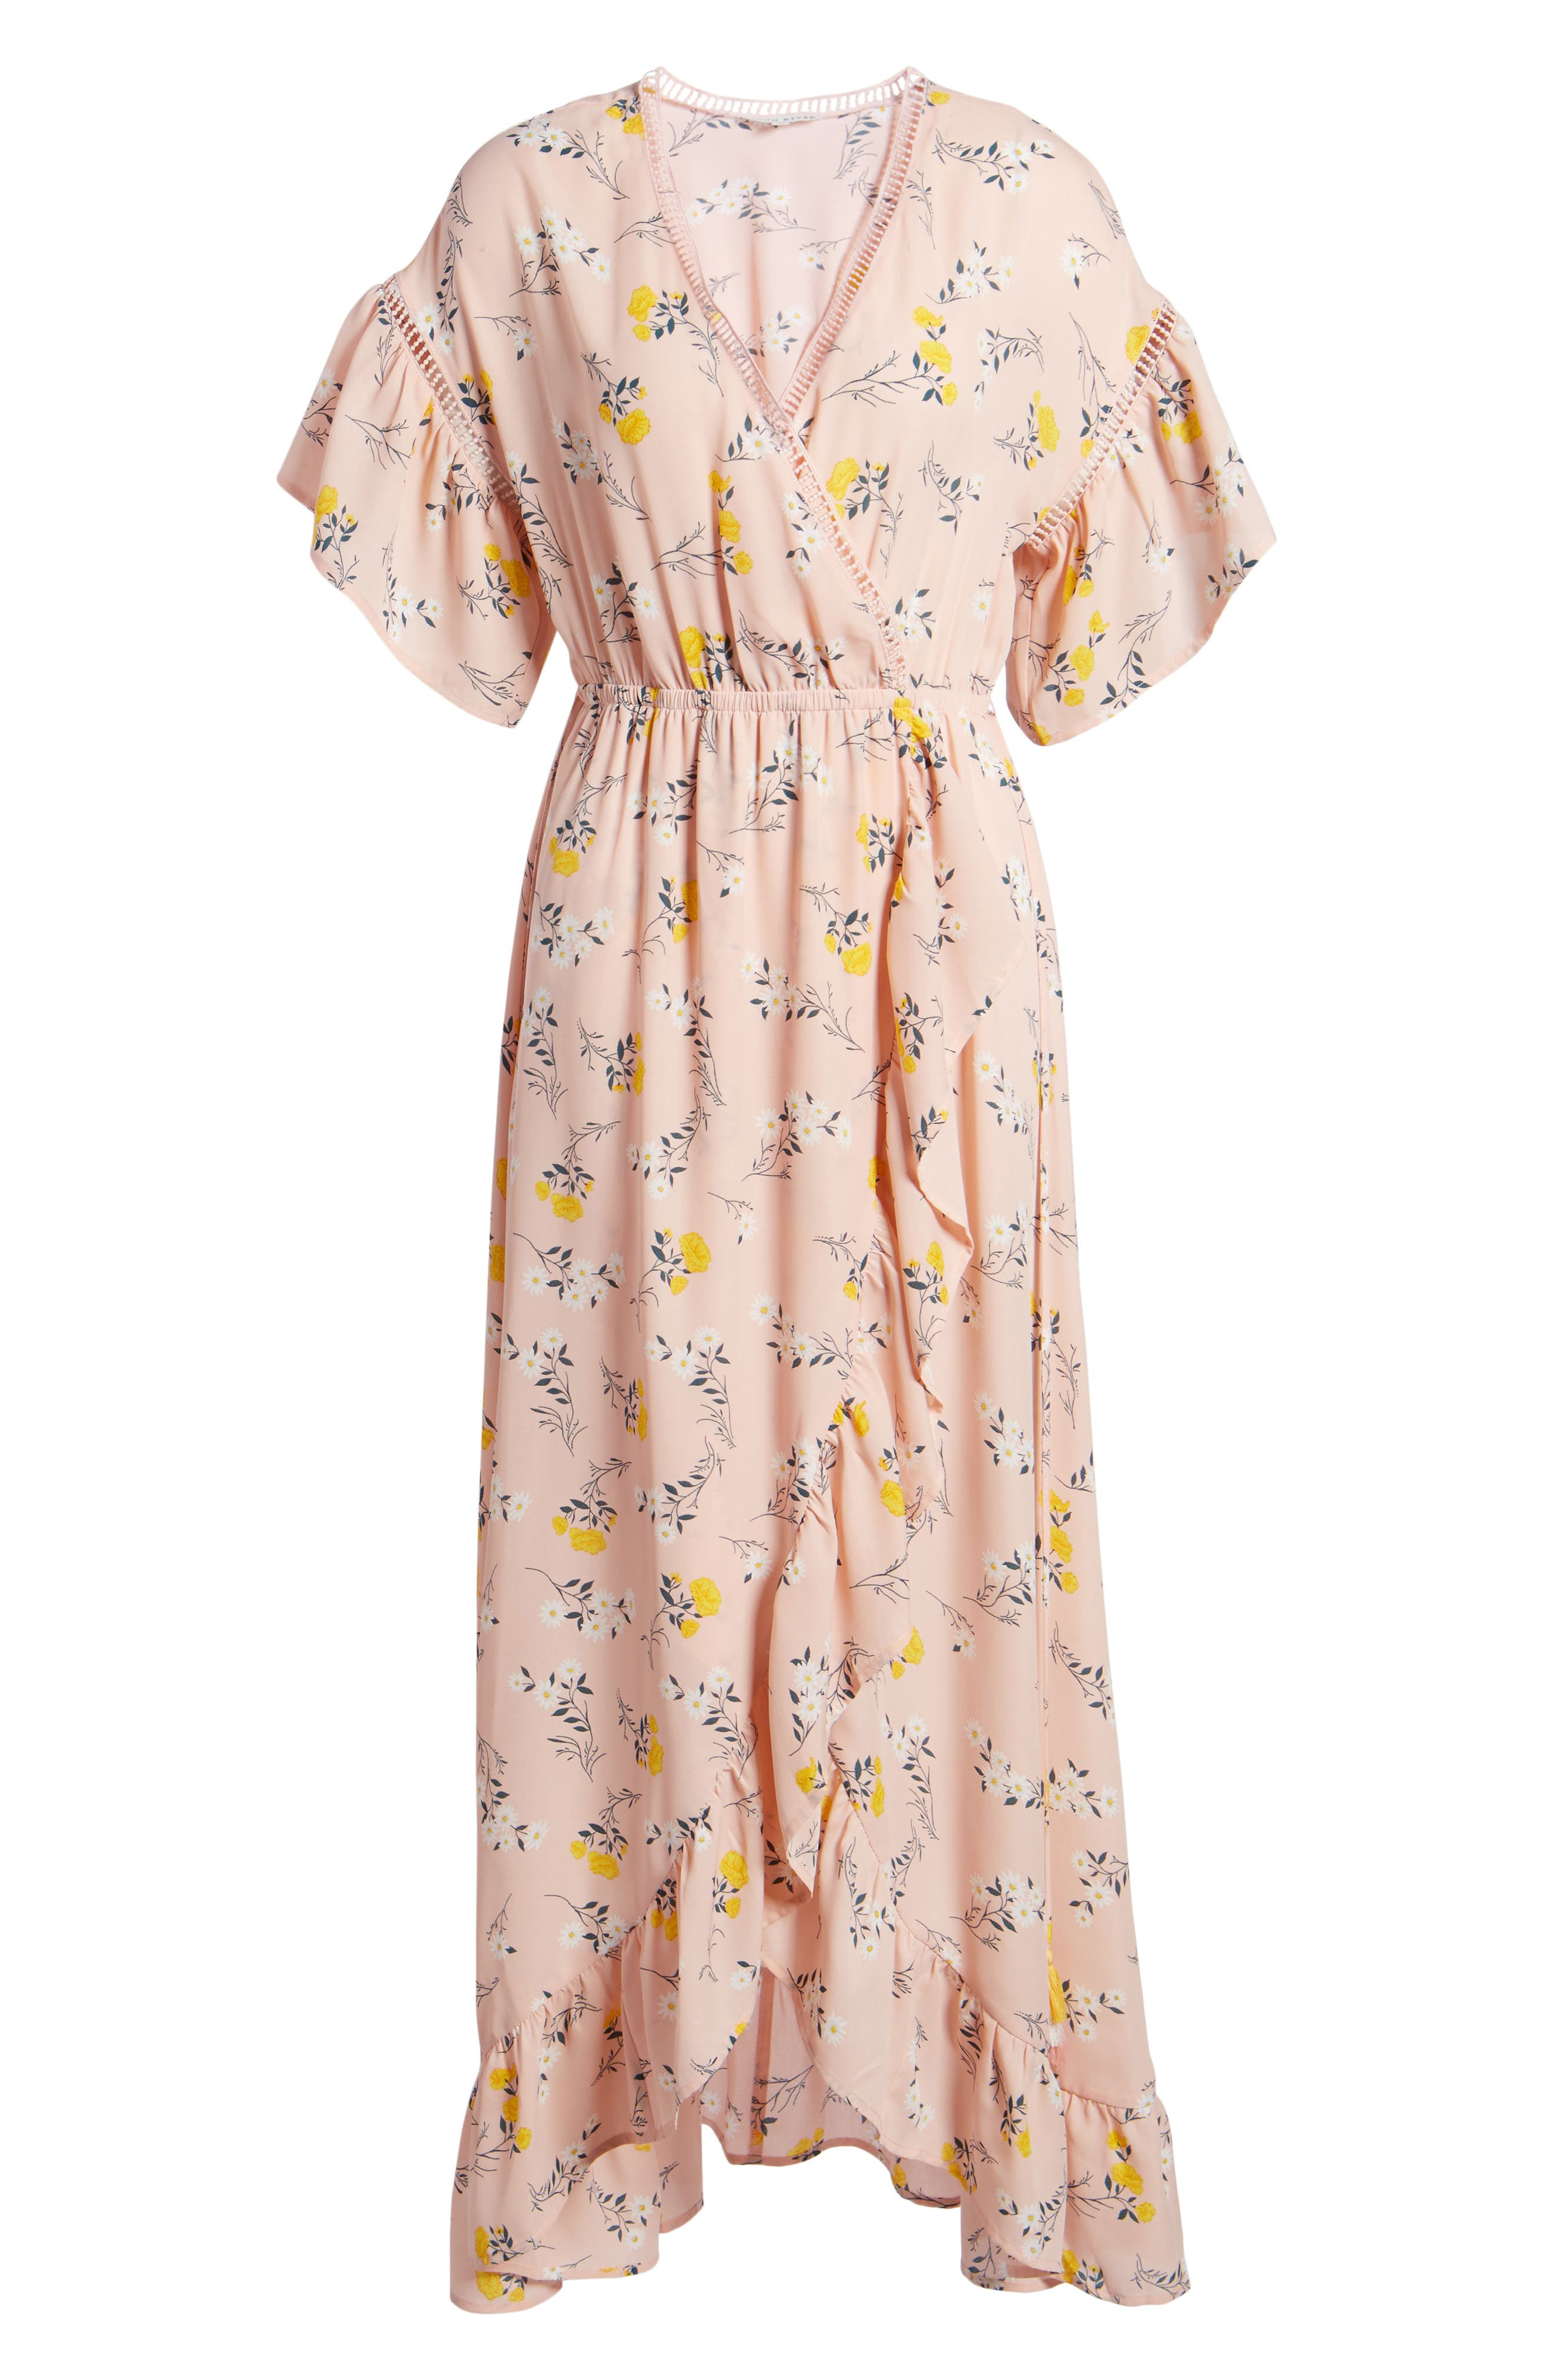 Romance Floral Wrap Style Dress,                             Alternate thumbnail 6, color,                             650